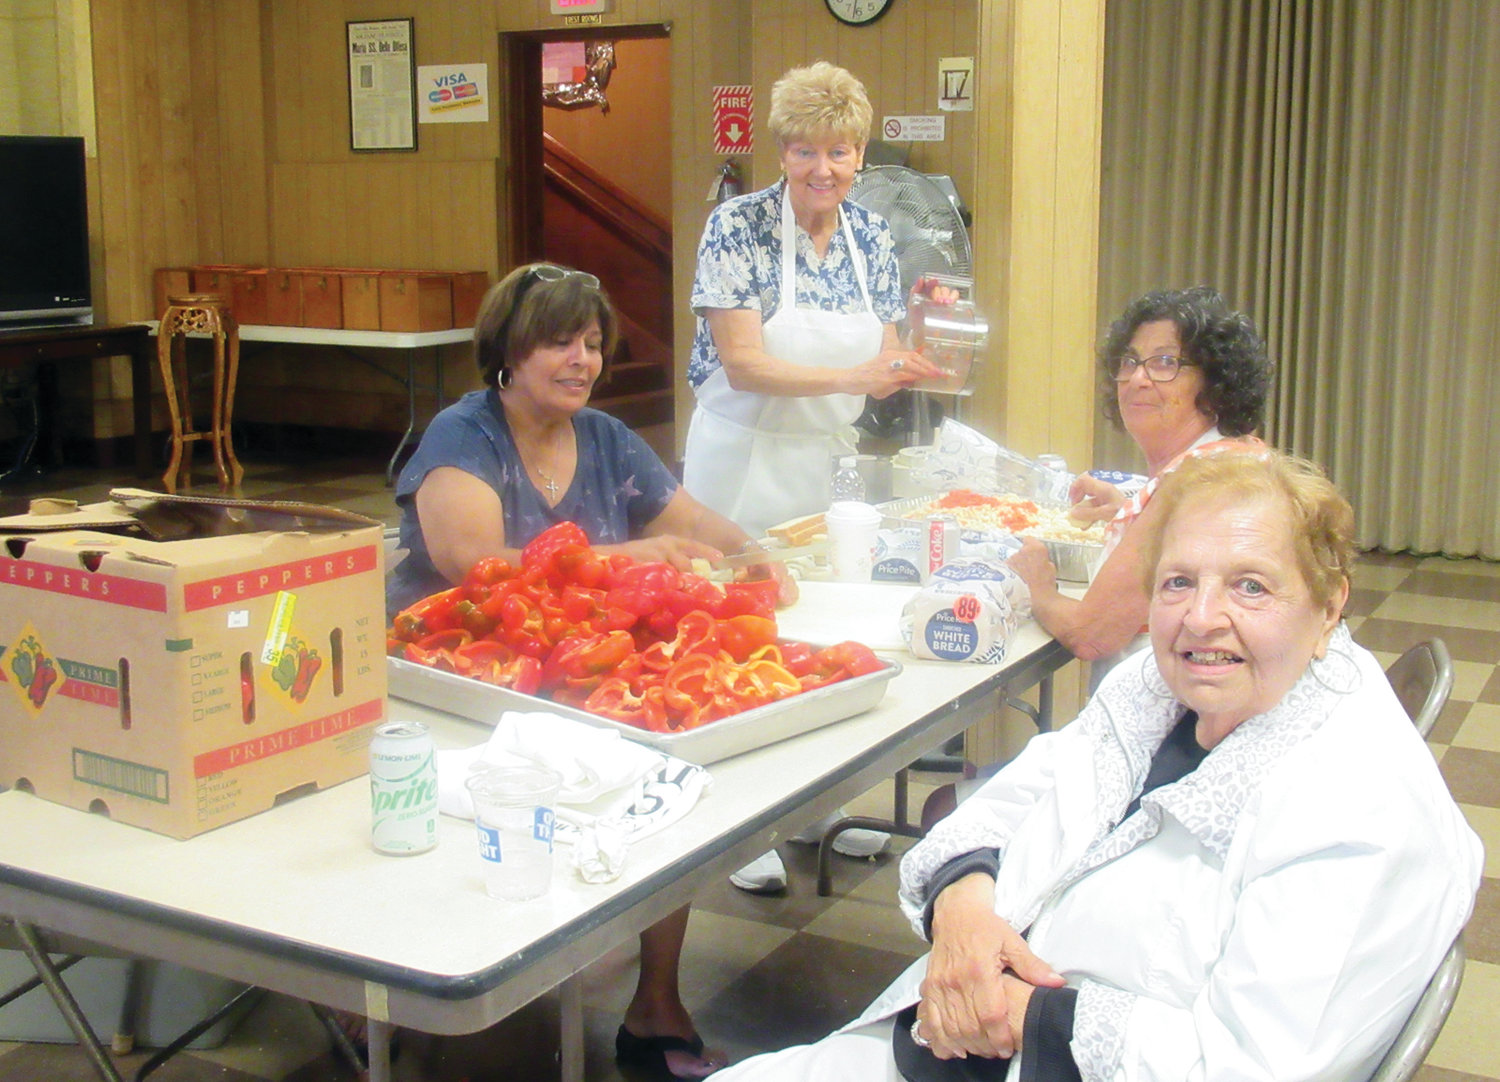 CAROL'S CORNER: Longtime Our Lady of Grace chef Carol Cambio, right, is all smiles during Tuesday's work session, which included Phyllis Gelsomino, Marilyn Delmonico and Cathy Macari cutting up red peppers for the parish's famous sausage and pepper sandwiches that will be served this weekend during the 91st Italian Feast and Festival.